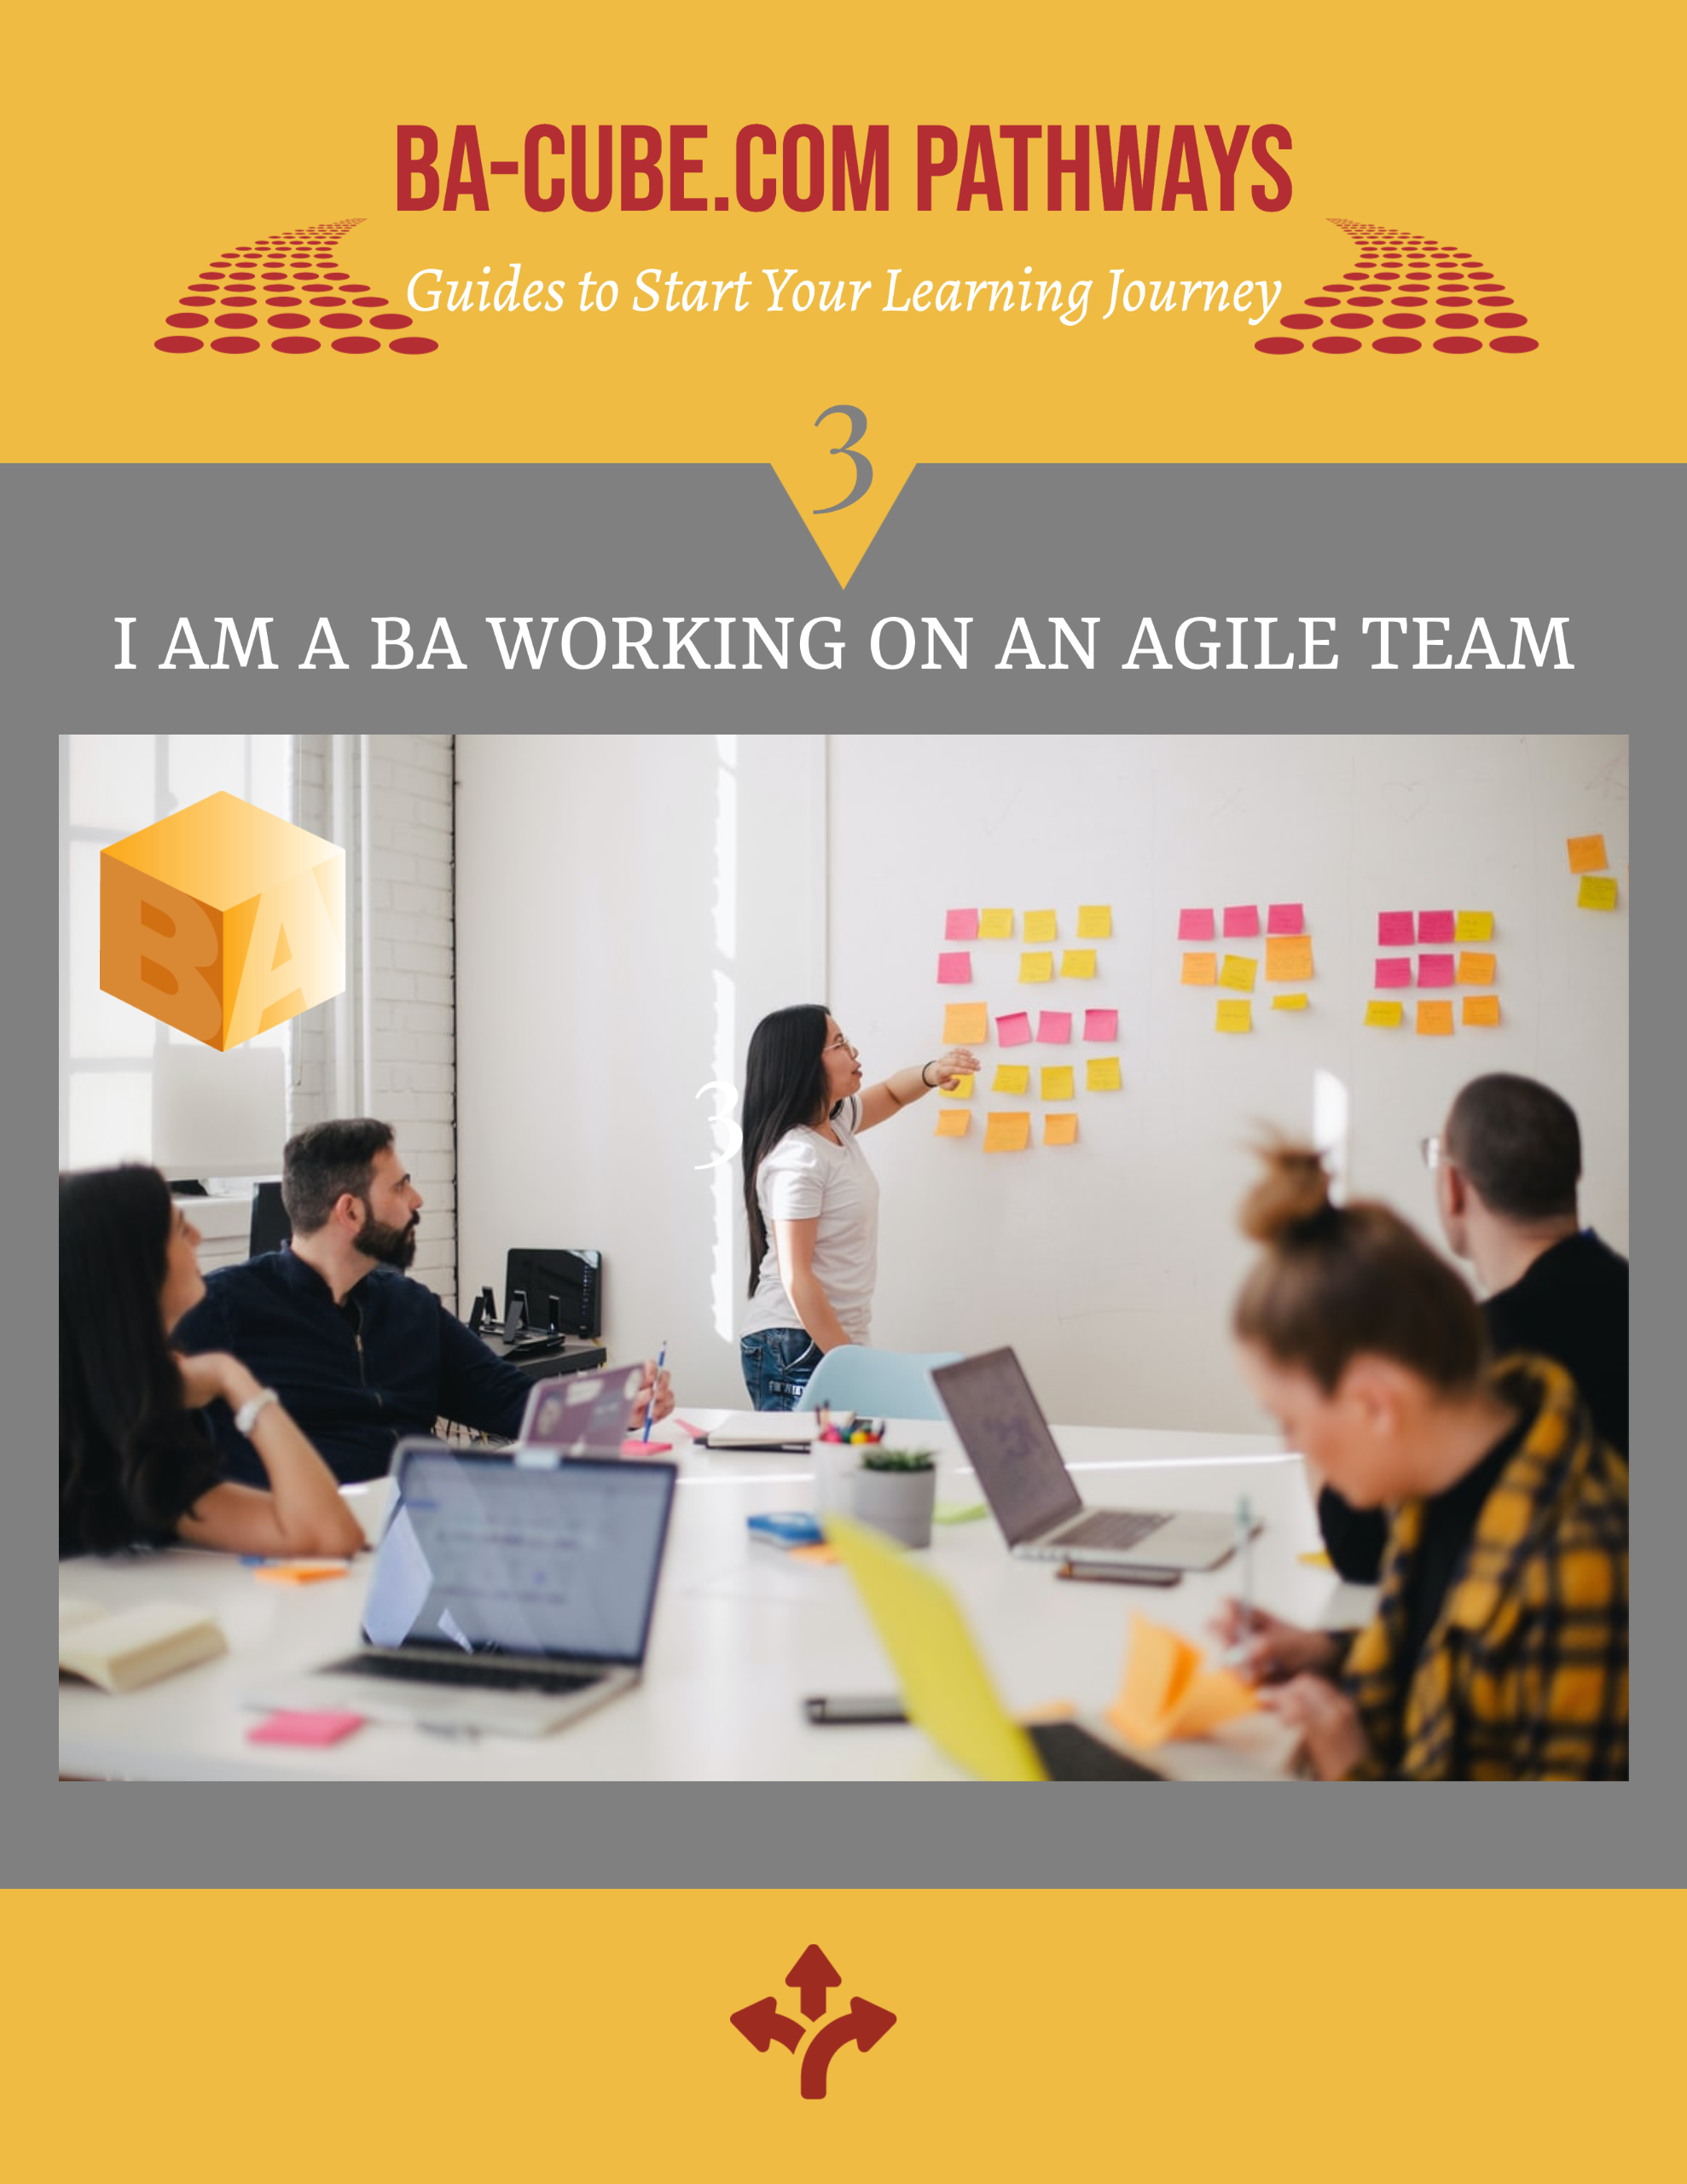 Pathway 3: I am a BA working on an Agile team